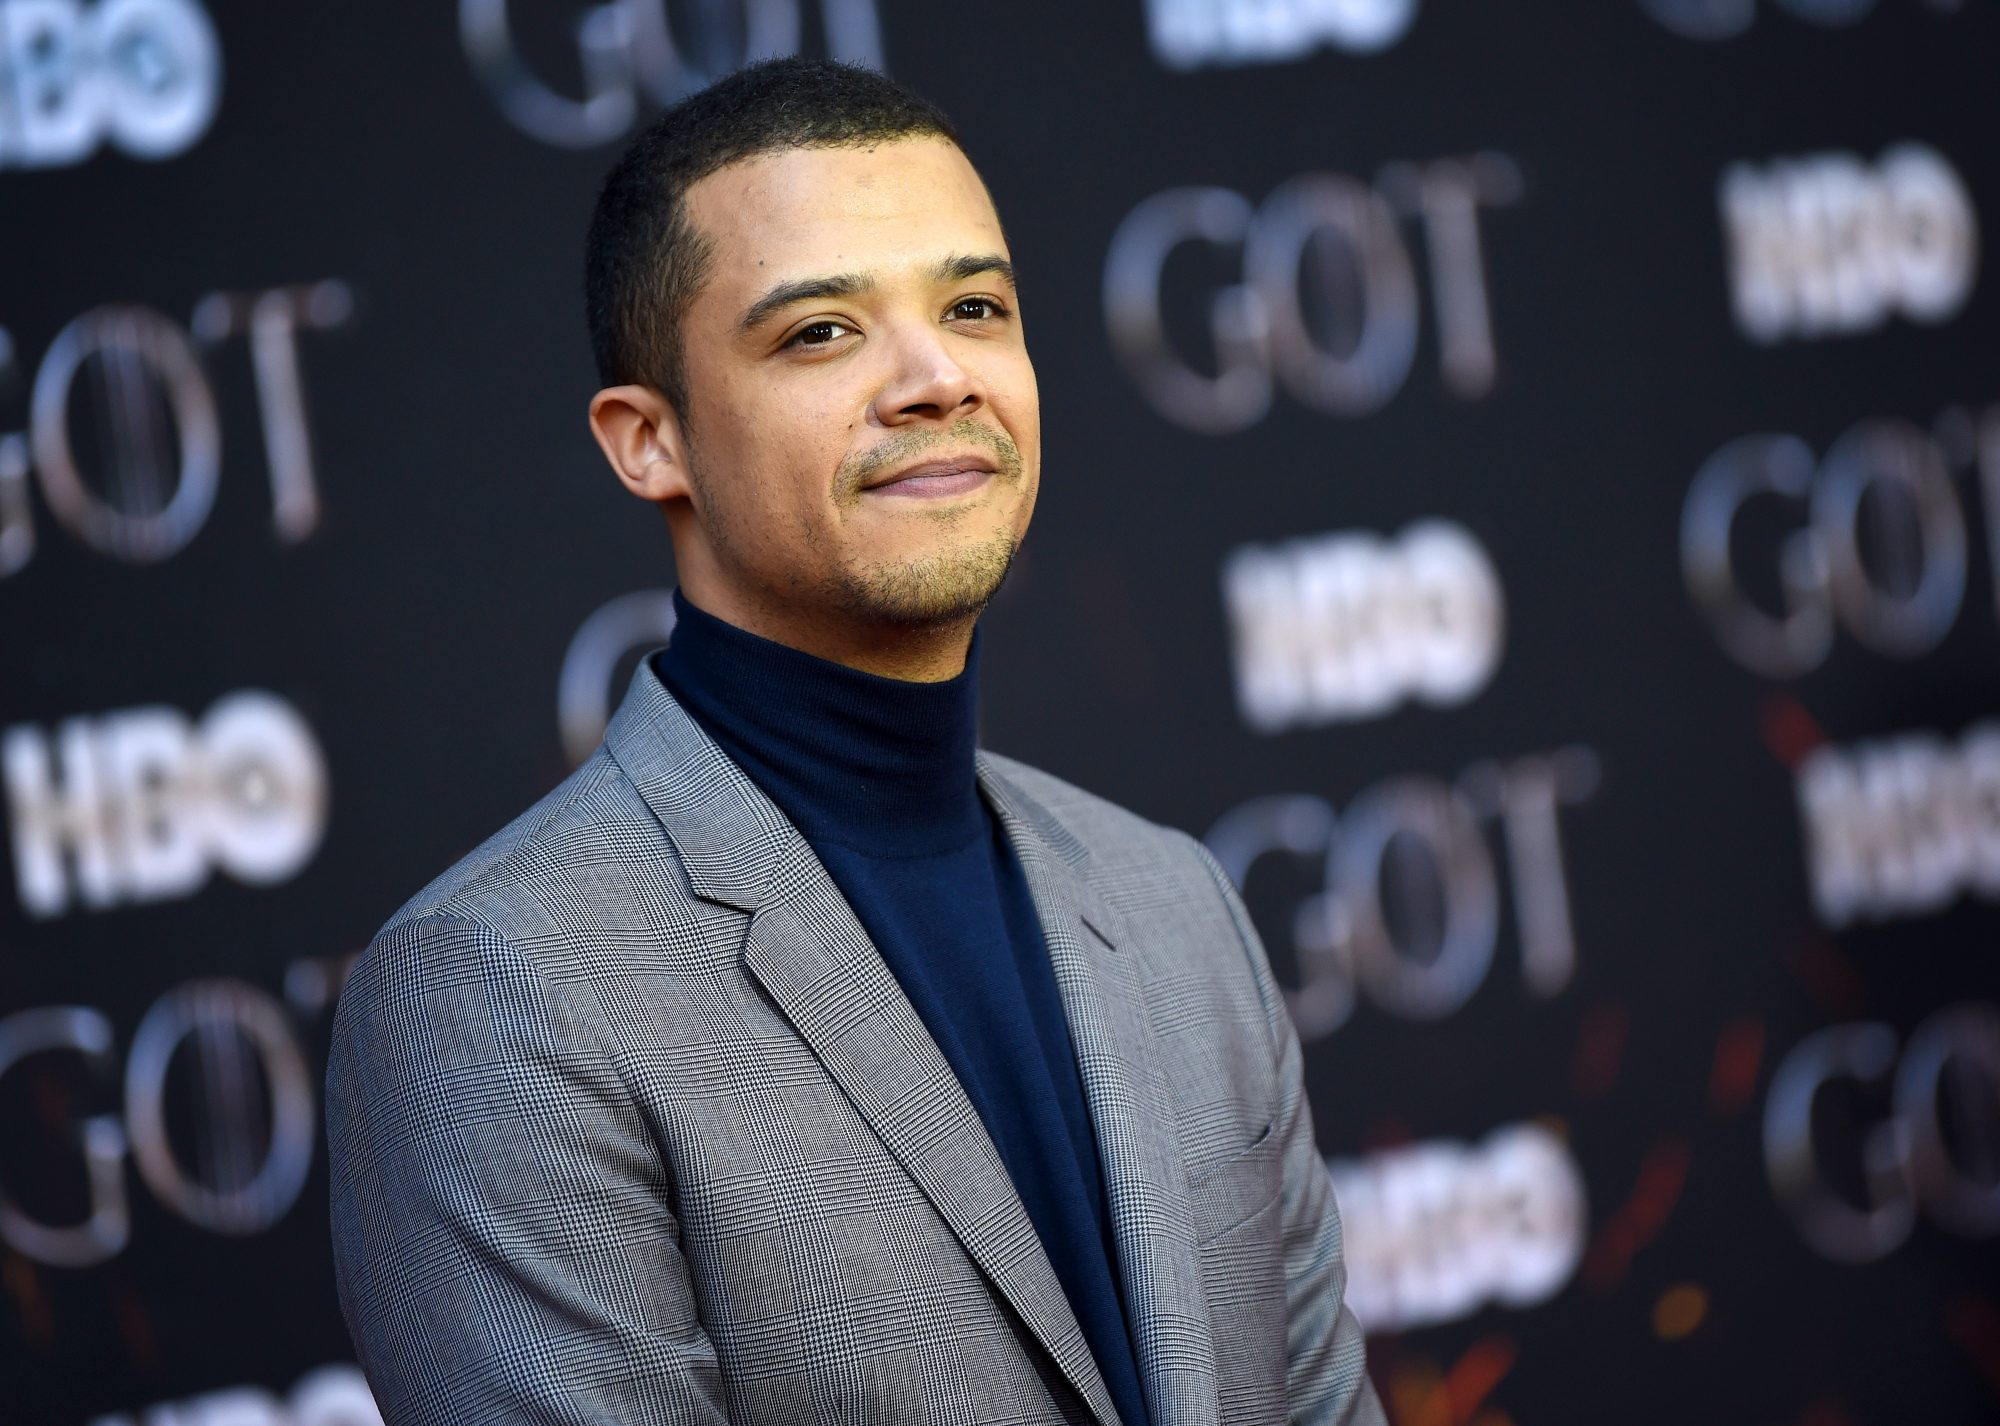 "NEW YORK, NEW YORK - APRIL 03: Jacob Anderson attends the ""Game Of Thrones"" Season 8 Premiere on April 03, 2019 in New York City. (Photo by Dimitrios Kambouris/Getty Images)"